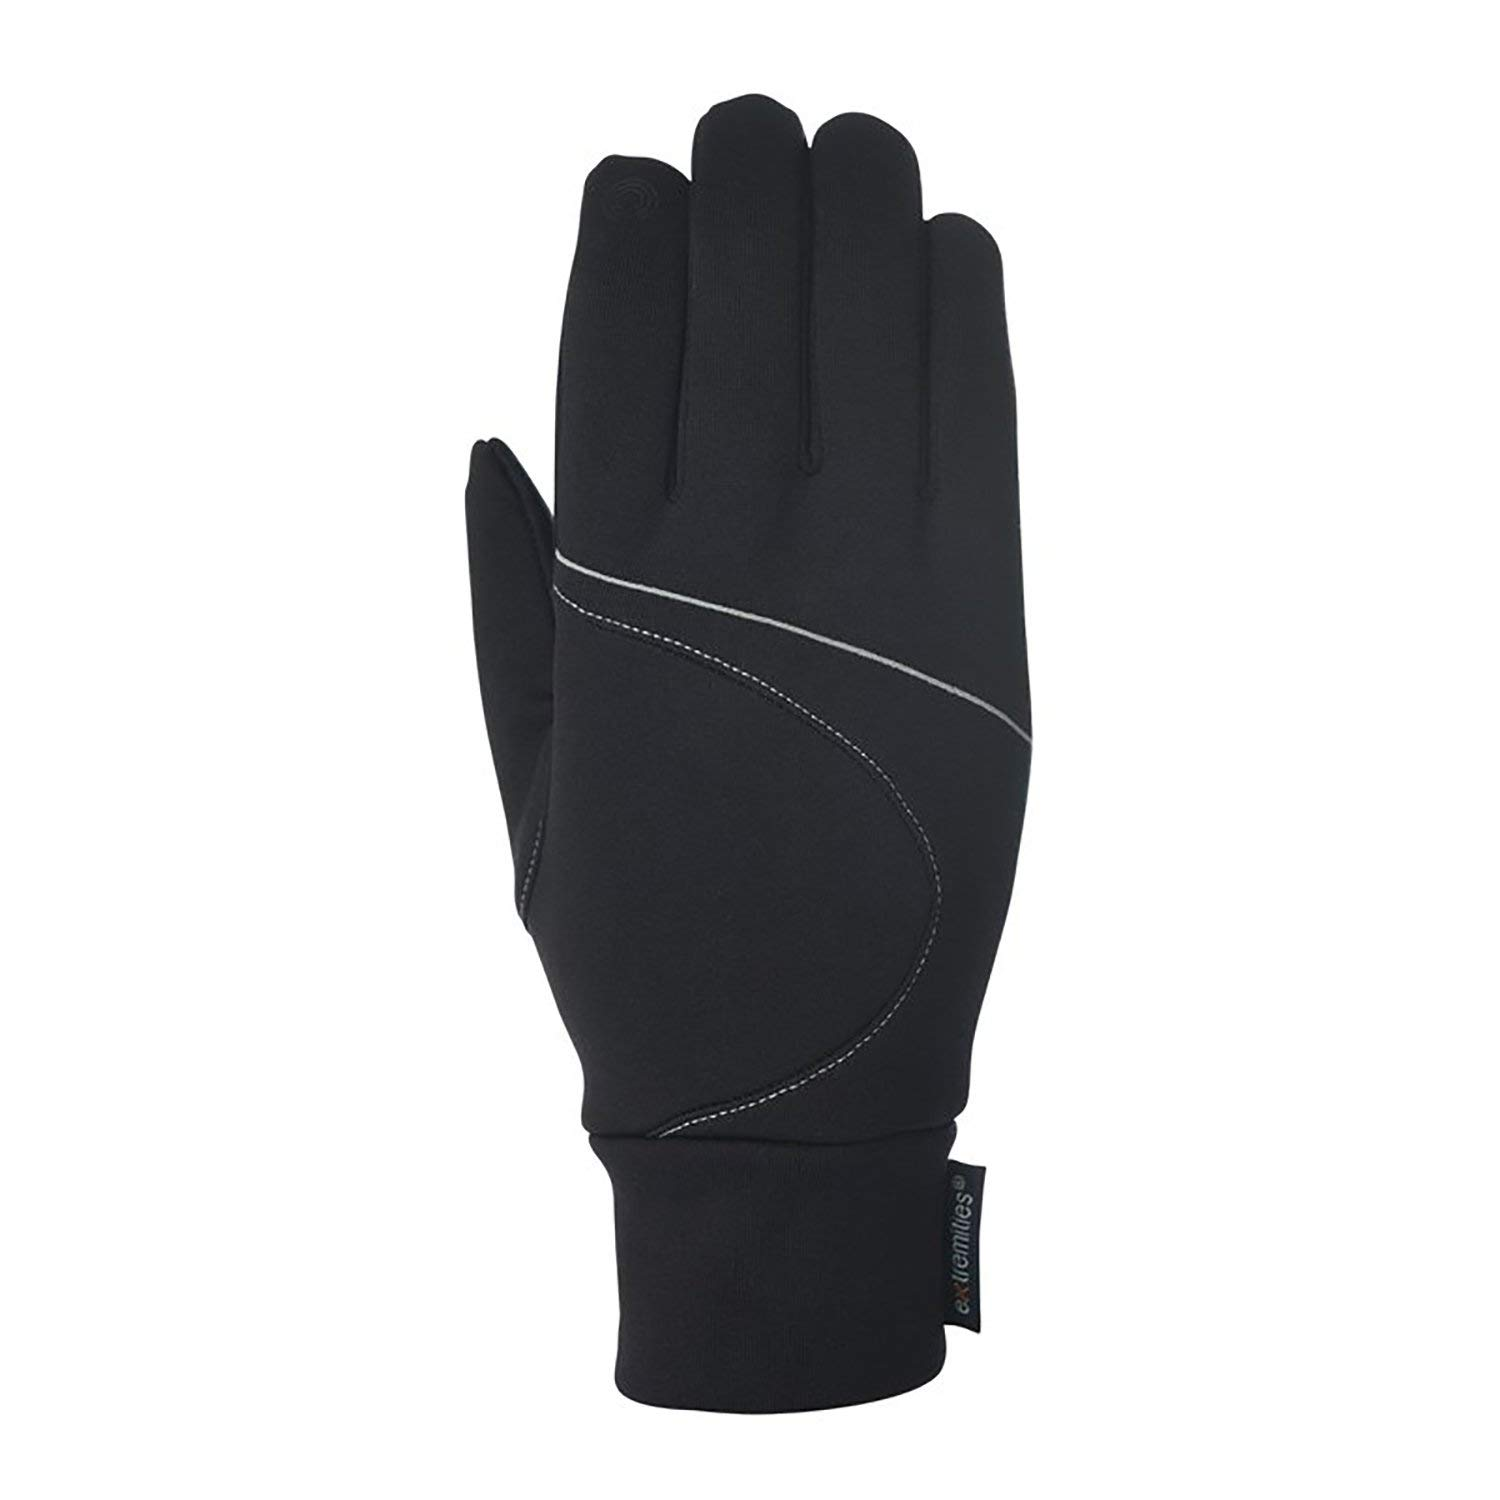 Extremities Power Liner Glove Black Small Gloves